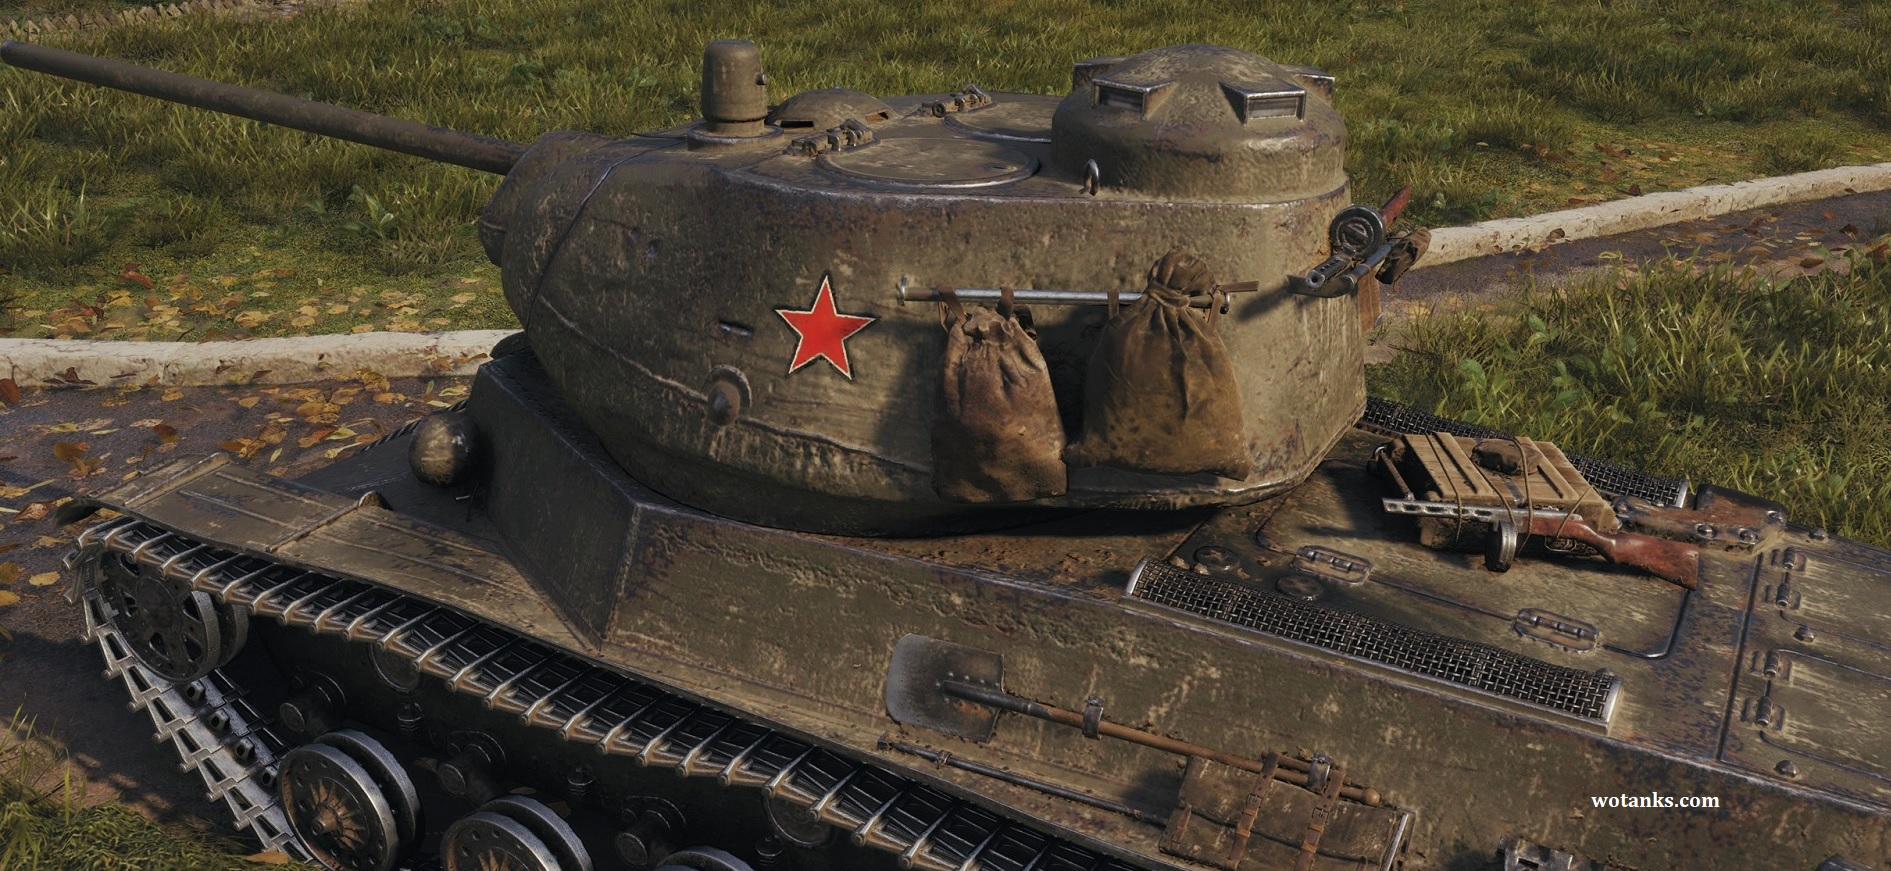 T-50-2 вернется в World of Tanks